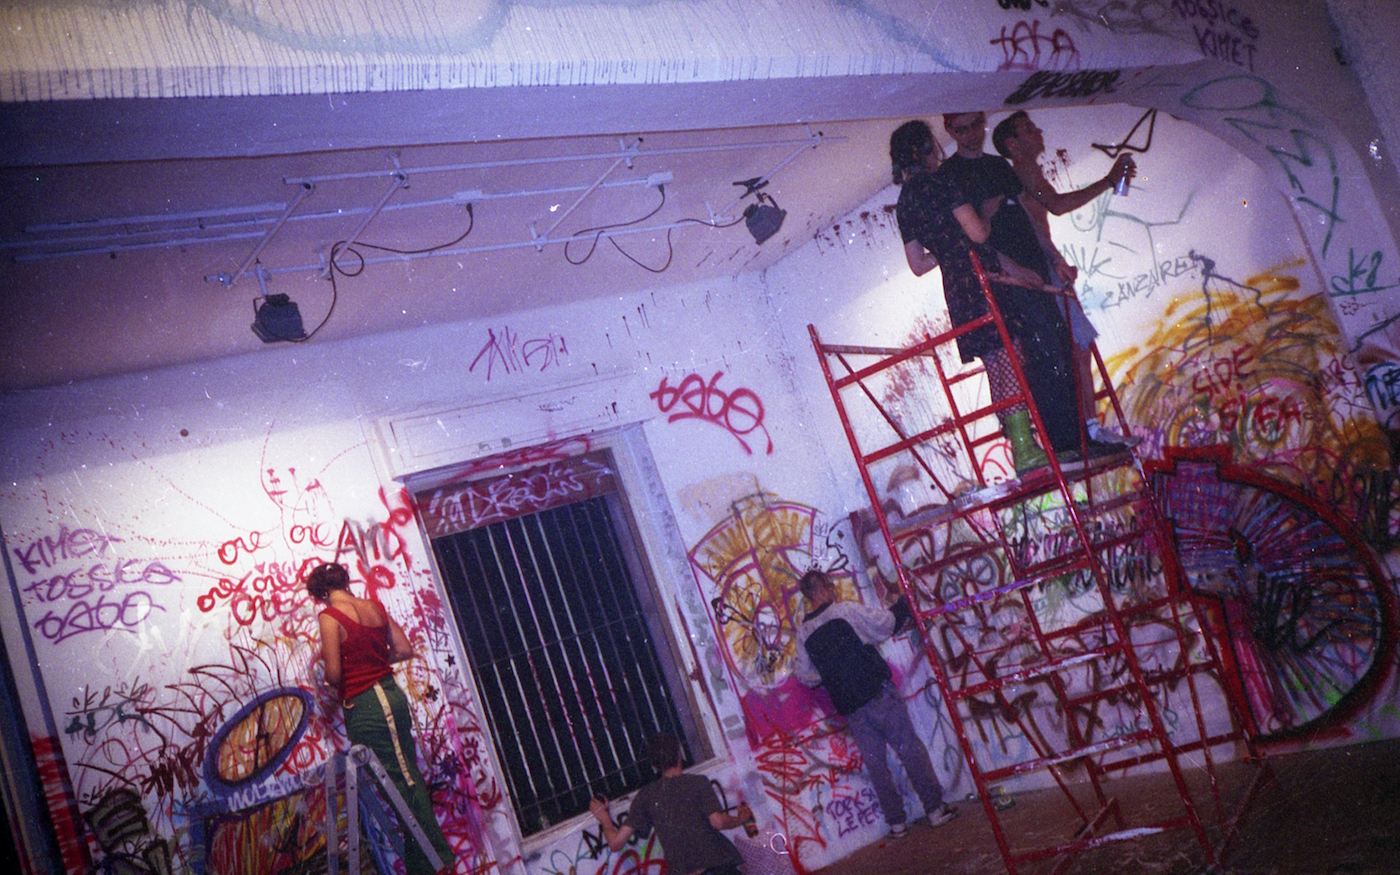 Bombing Party la città ideale, Careof, Cusano Milanino_MI, 1993. Foto: Cuoghi Corsello